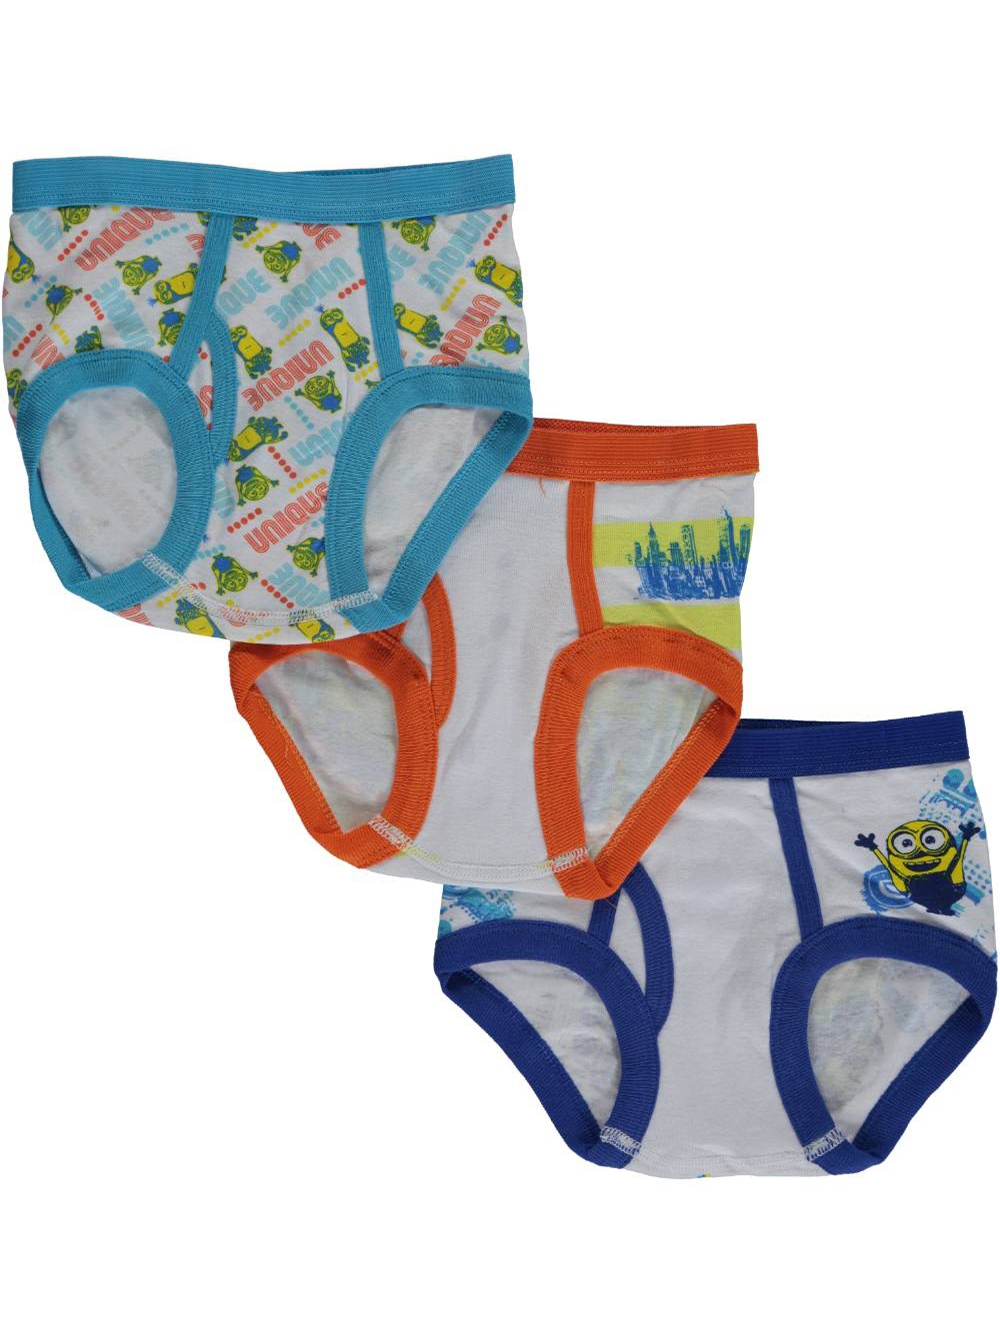 Image of Minions Little Boys Toddler Character Highlight 3Pack Briefs Sizes 2T  4T  whiteyellow 4t